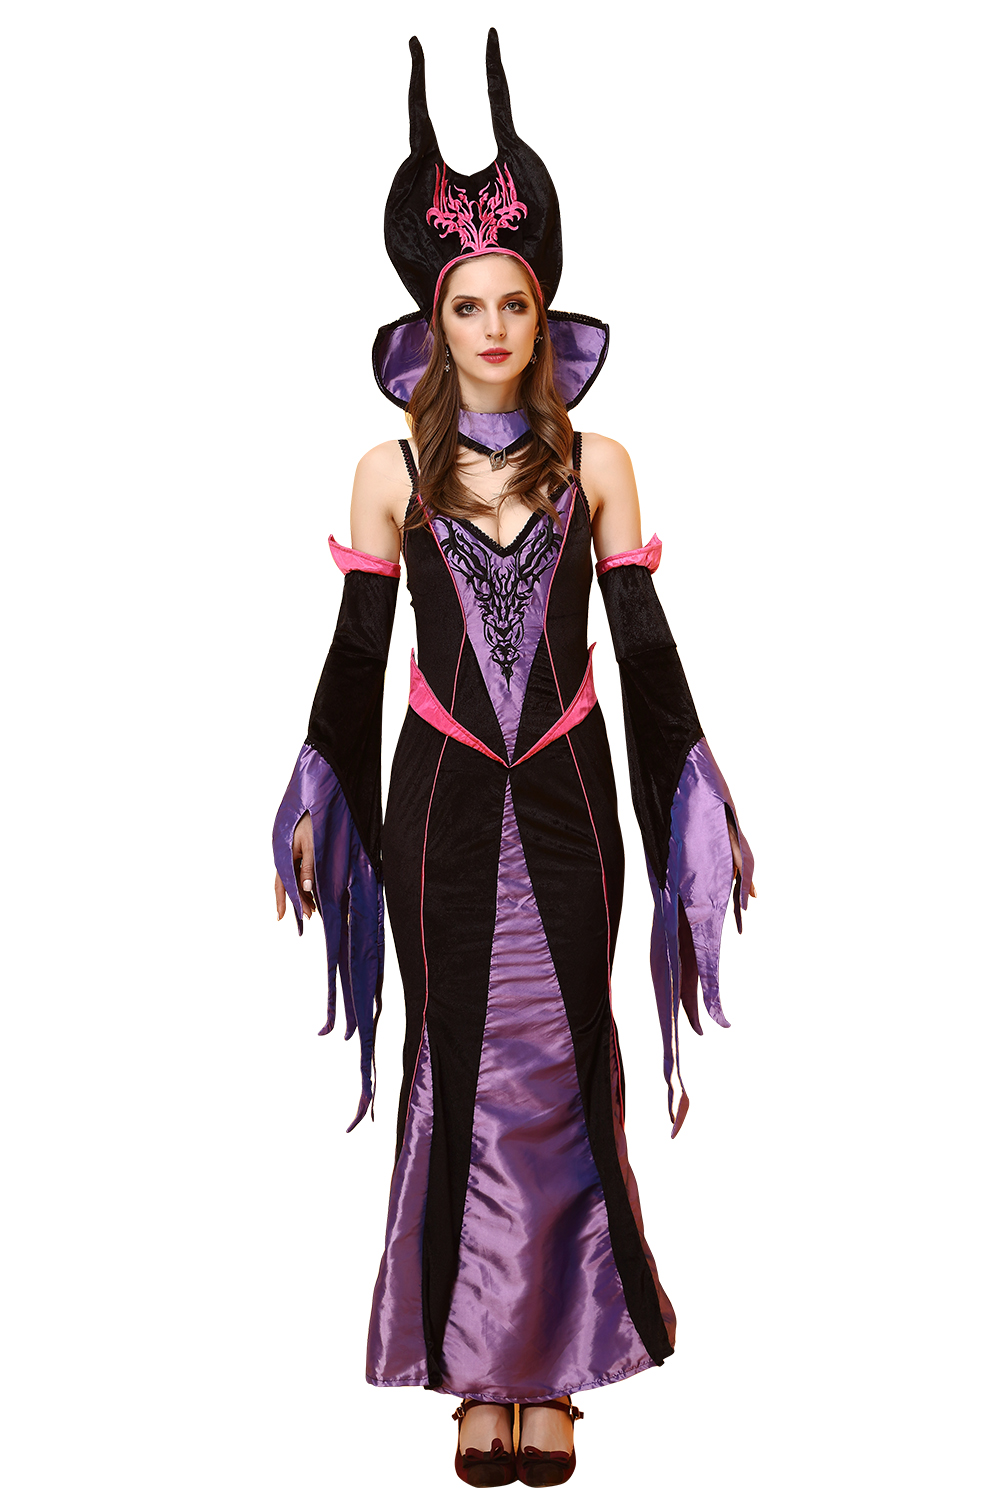 de la etapa reina de la fiesta de disfraces de halloween dress up outfit cosplay